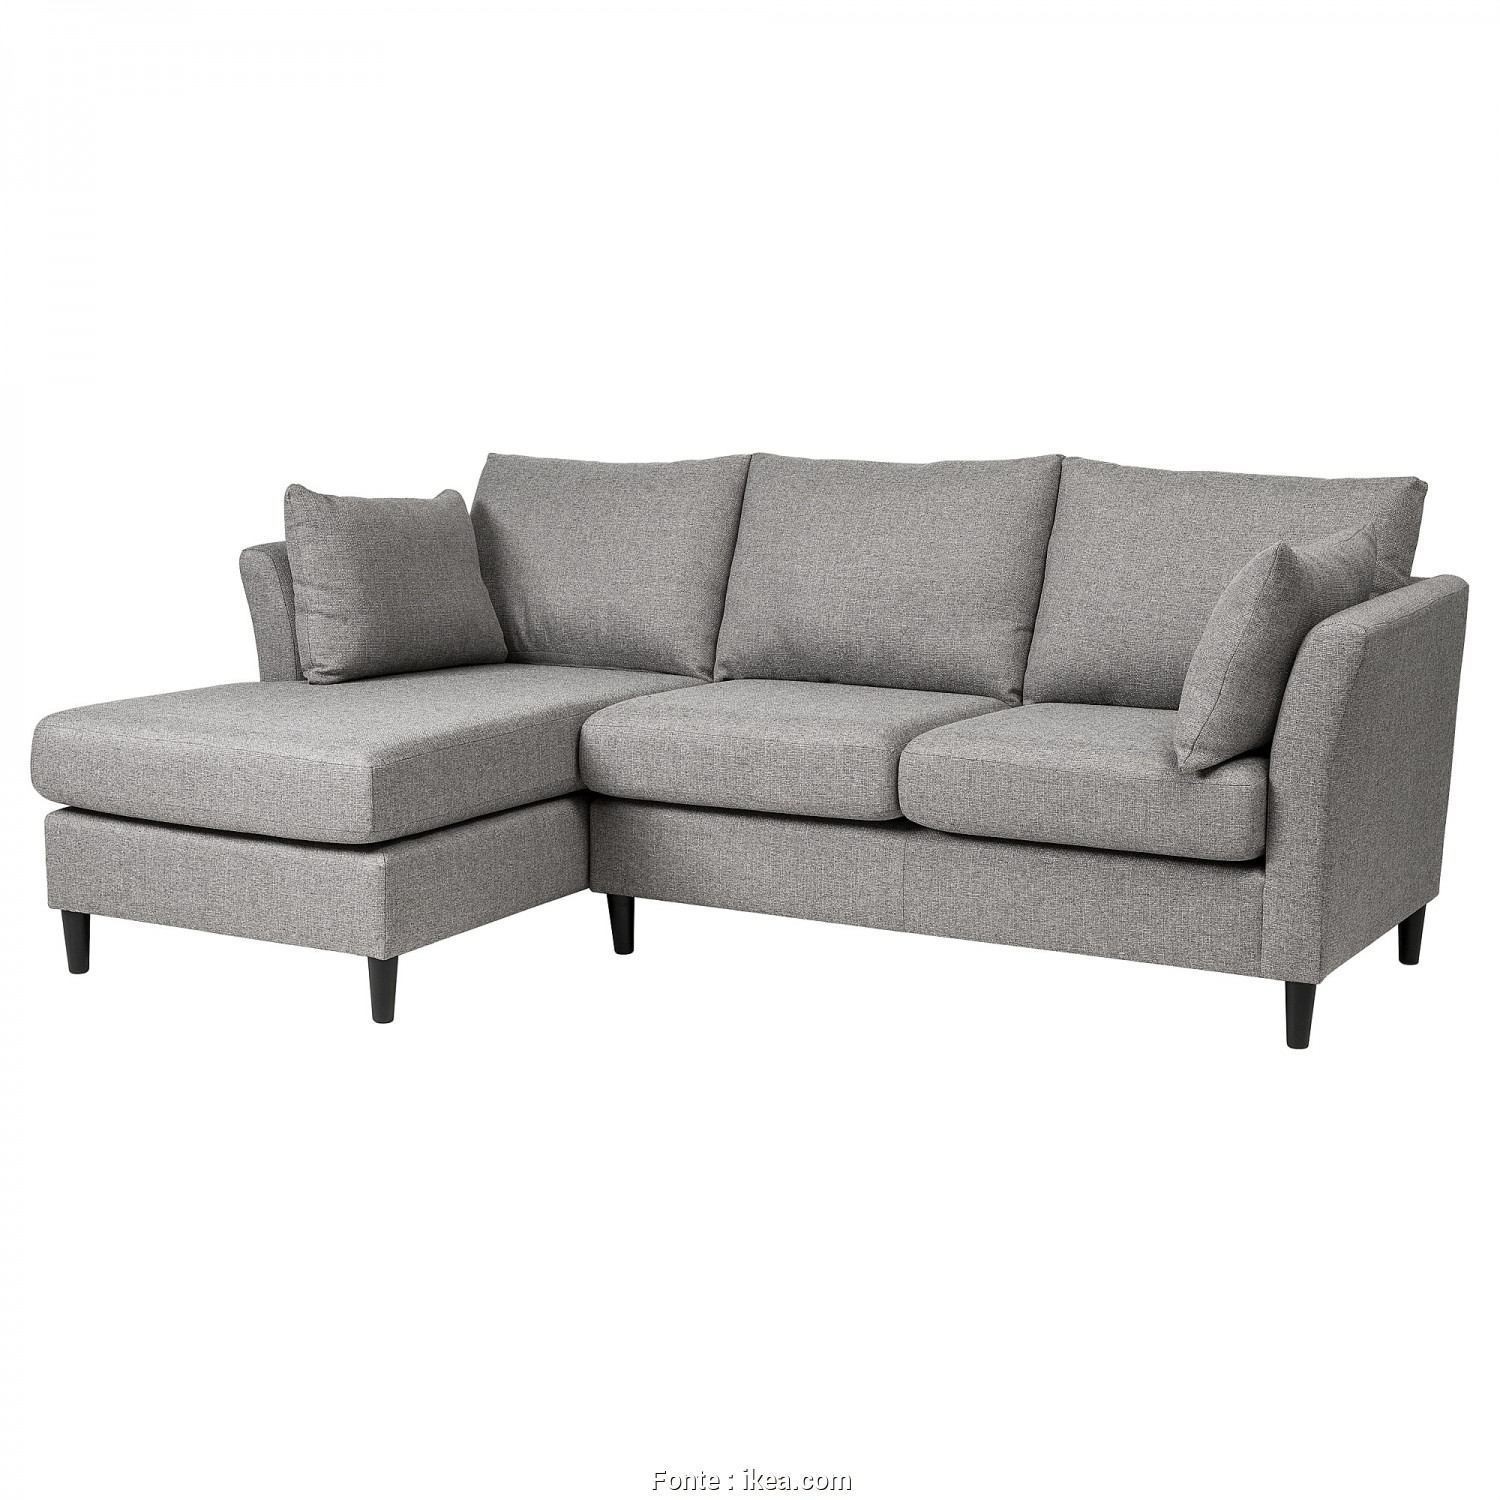 Backabro Sofa, With Chaise Longue £725 Ikea, Bellissimo IKEA BANKERYD 2-Seat Sofa W Chaise Longue, Left